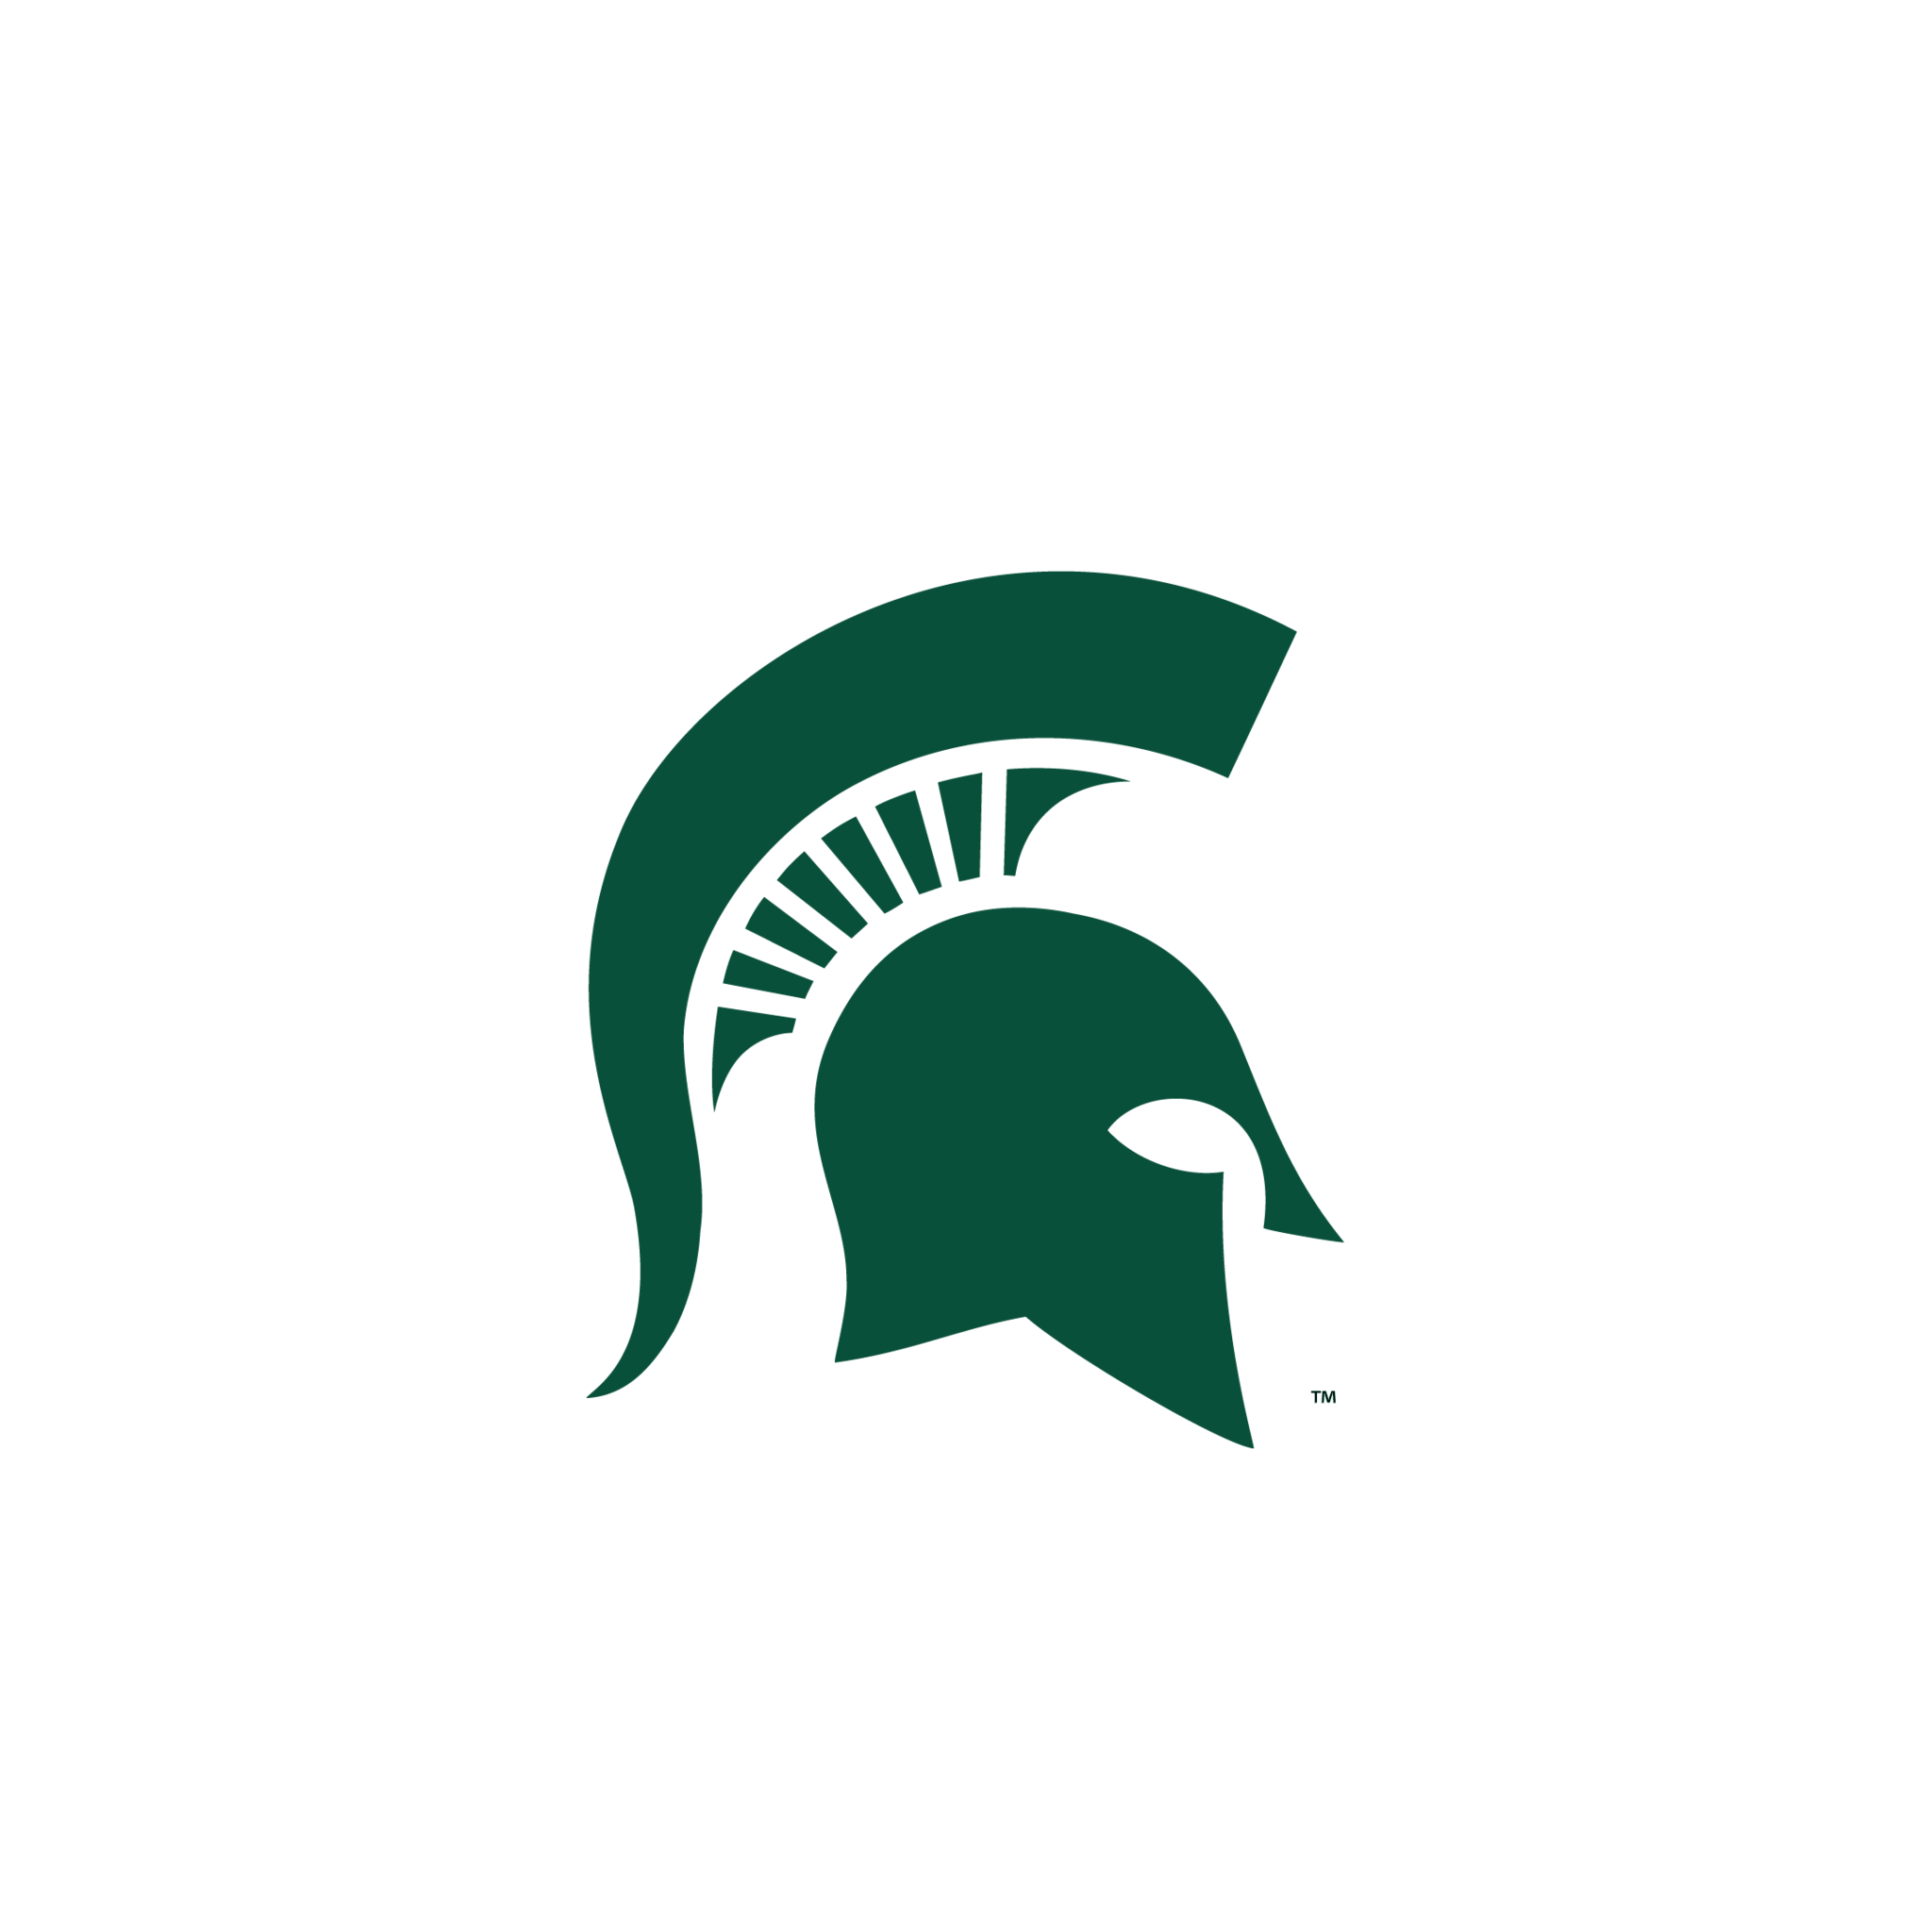 Michigan state university logo clipart clipart black and white library 17 Best images about Michigan state on Pinterest | Logos, Models ... clipart black and white library